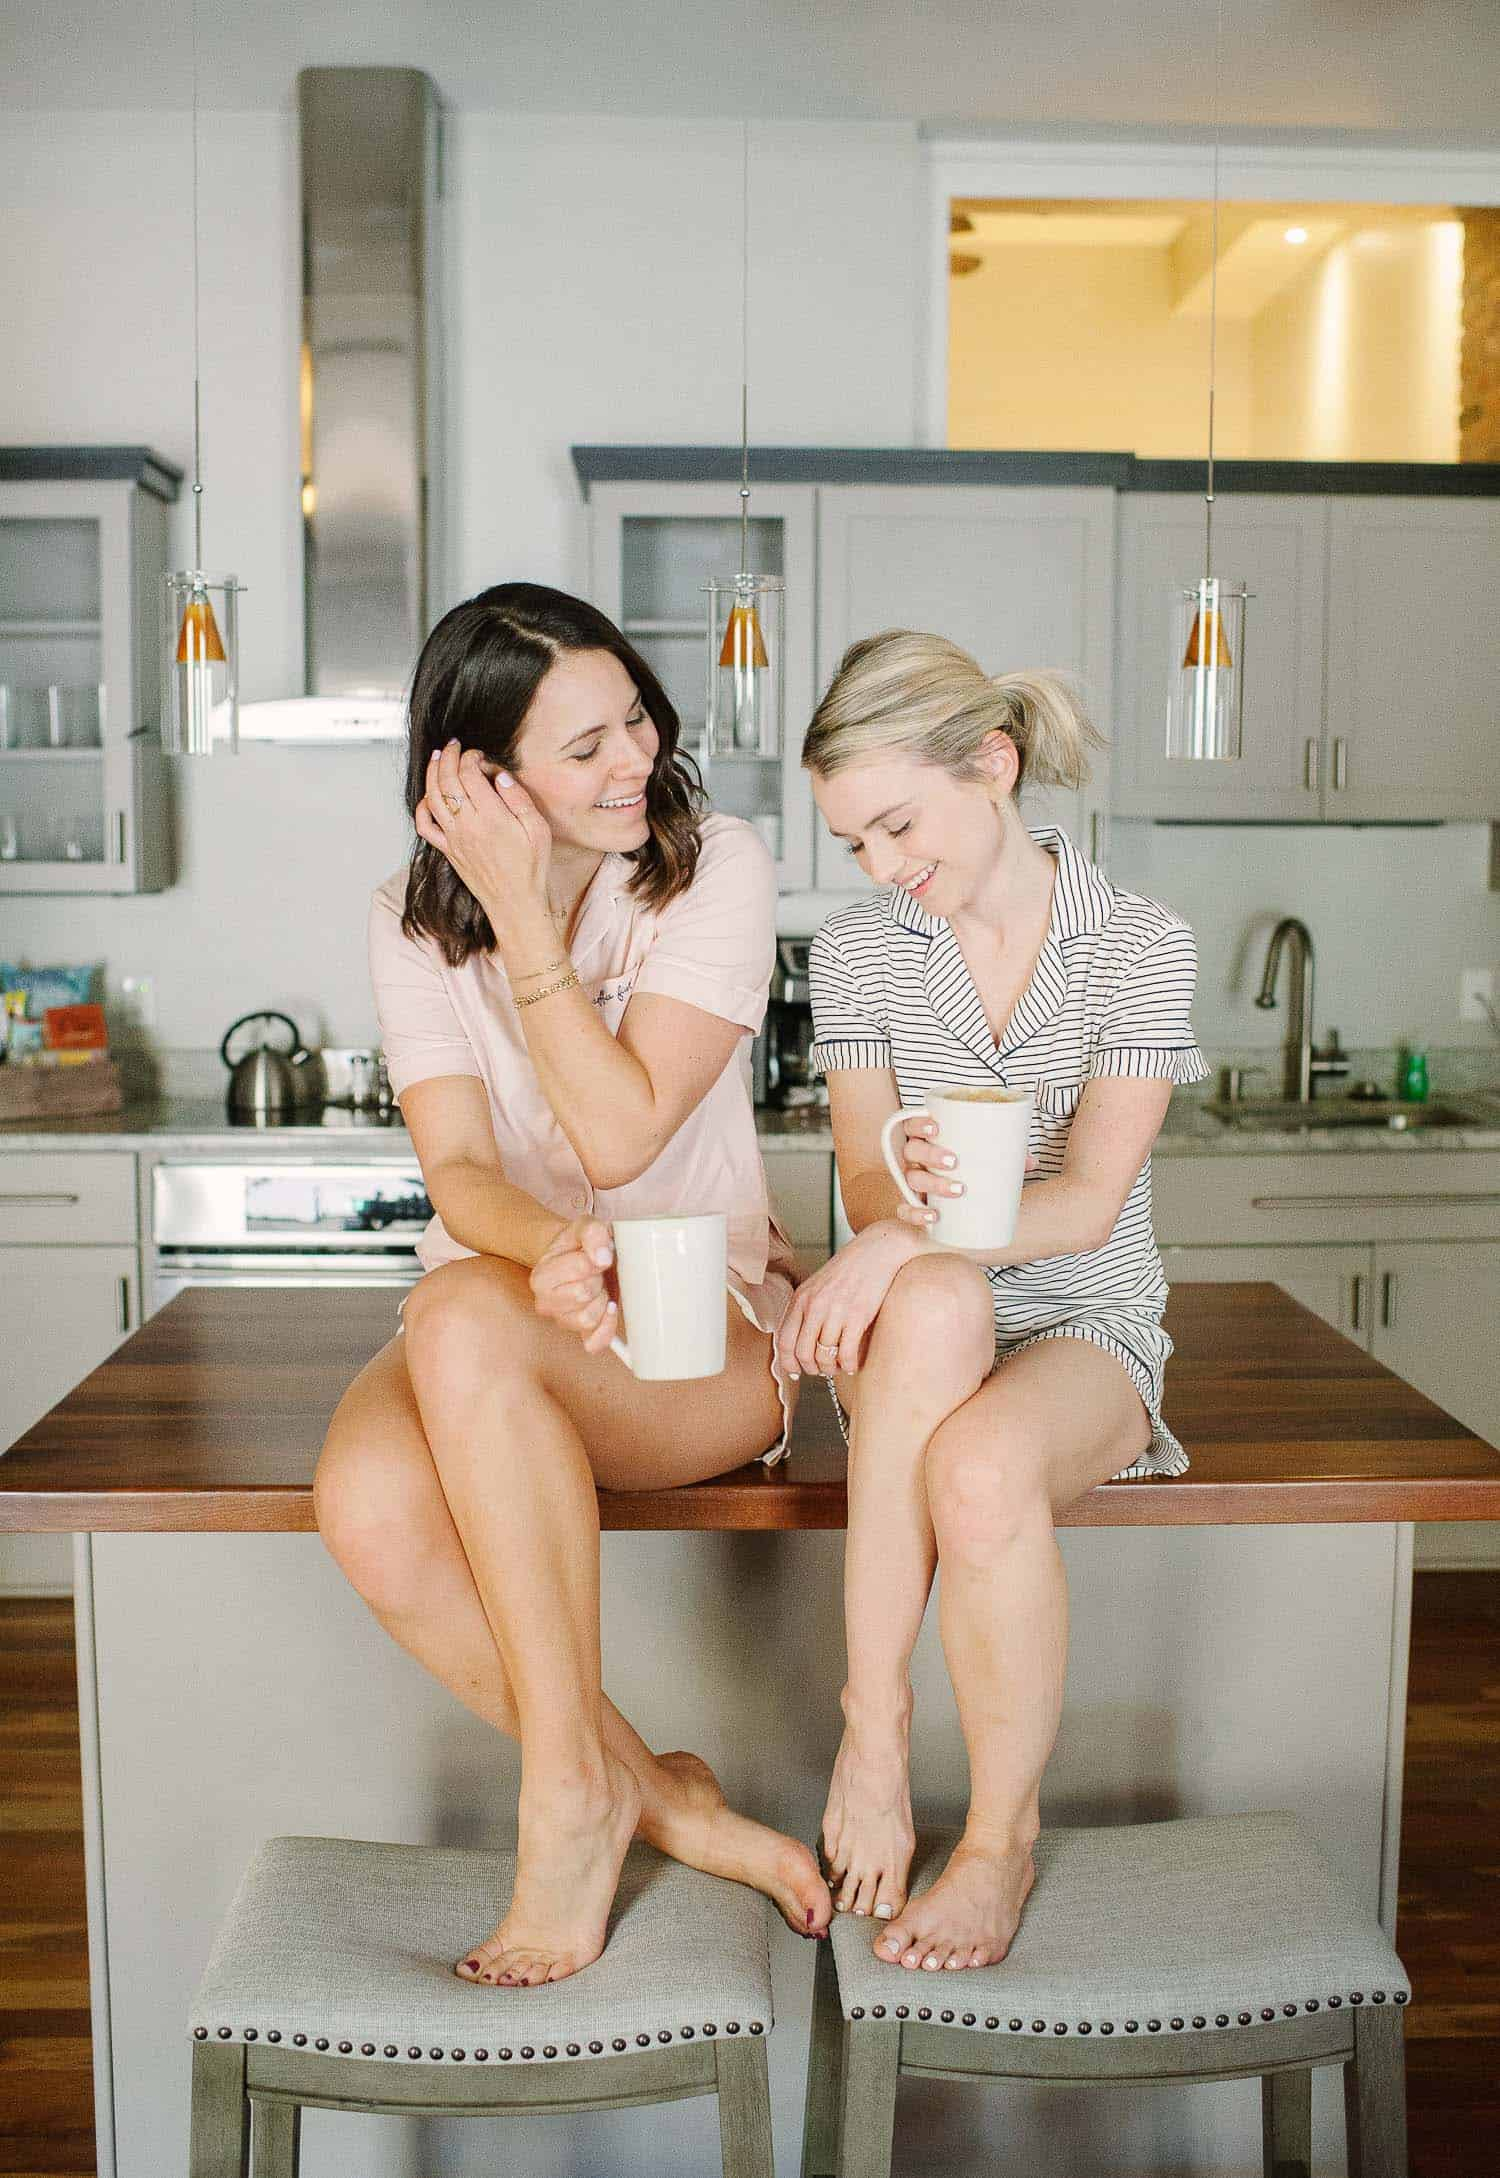 Girlfriends sitting on the counter together, friends traveling together, drinking coffee with friends